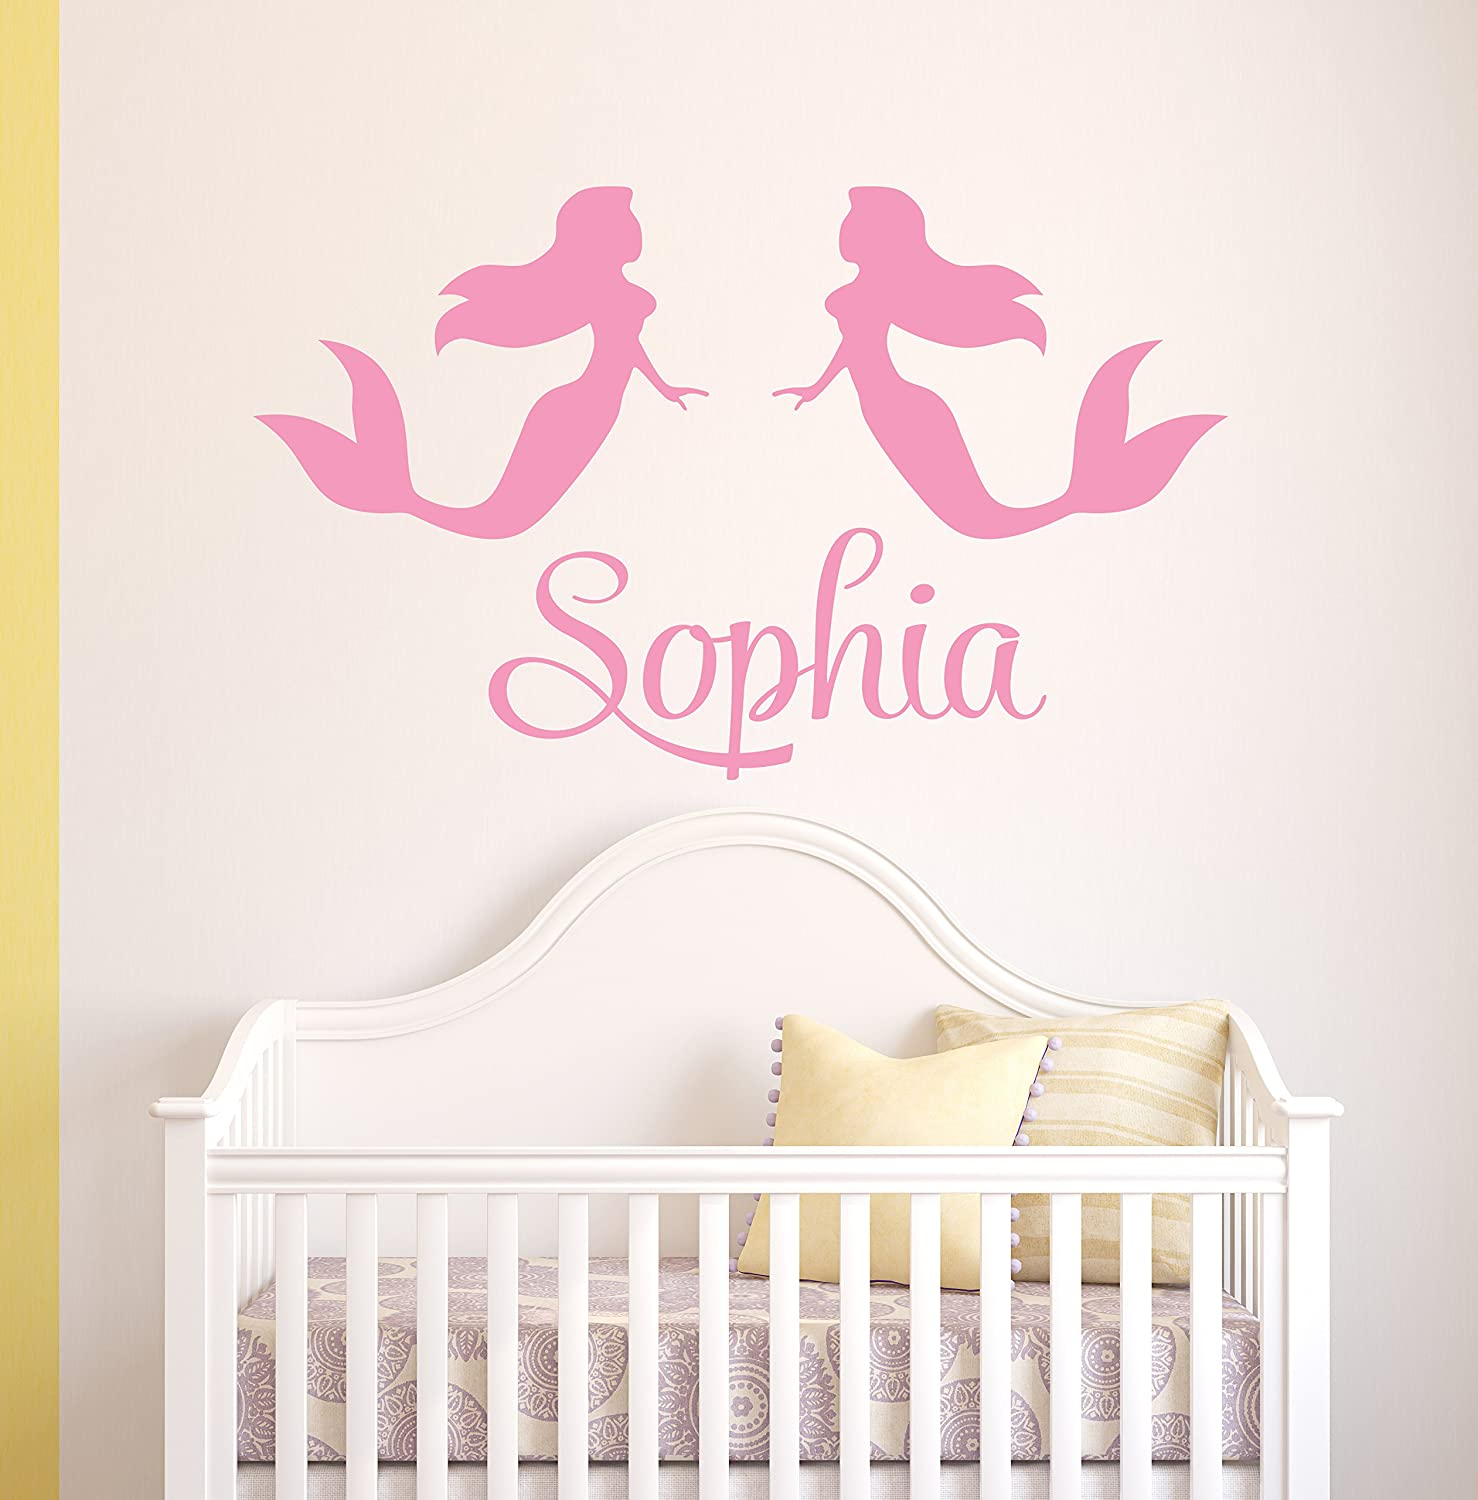 Personalized Mermaids Name Wall Decal - Mermaid Decoration - Nursery Wall Decals - Girl Wall Decal Vinyl Sticker